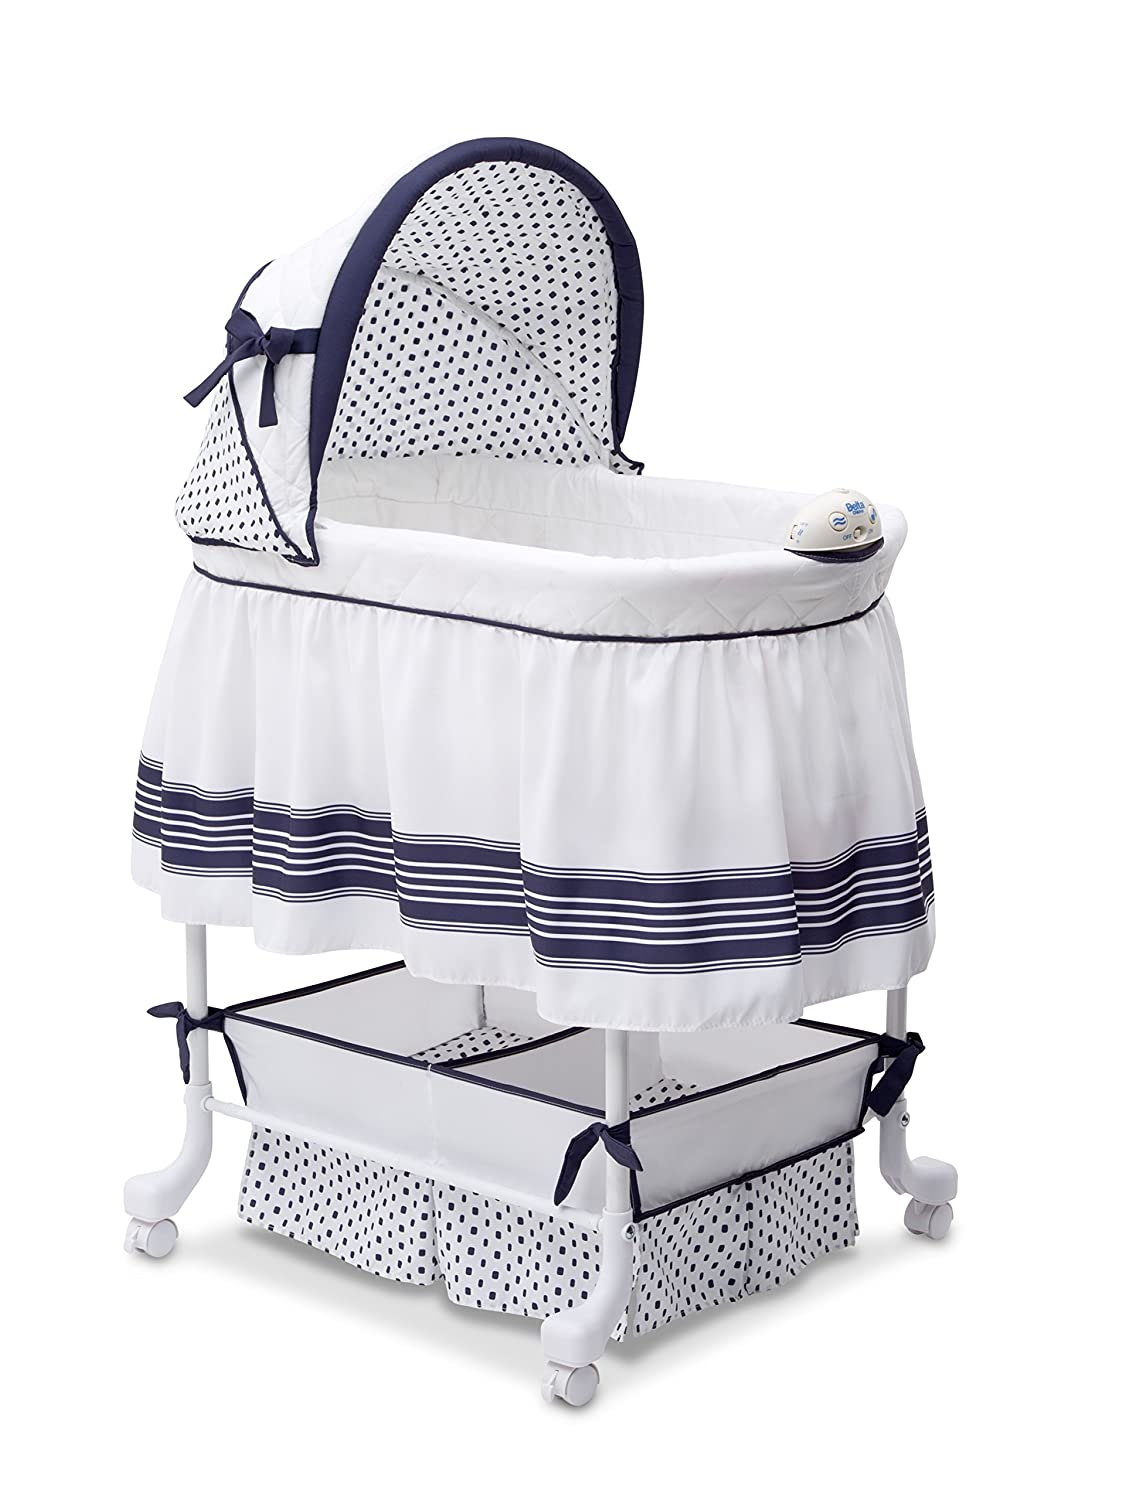 Delta Children Smooth Glide Bassinet, Marina Delta Enterprise Corp - PLA 27302-407